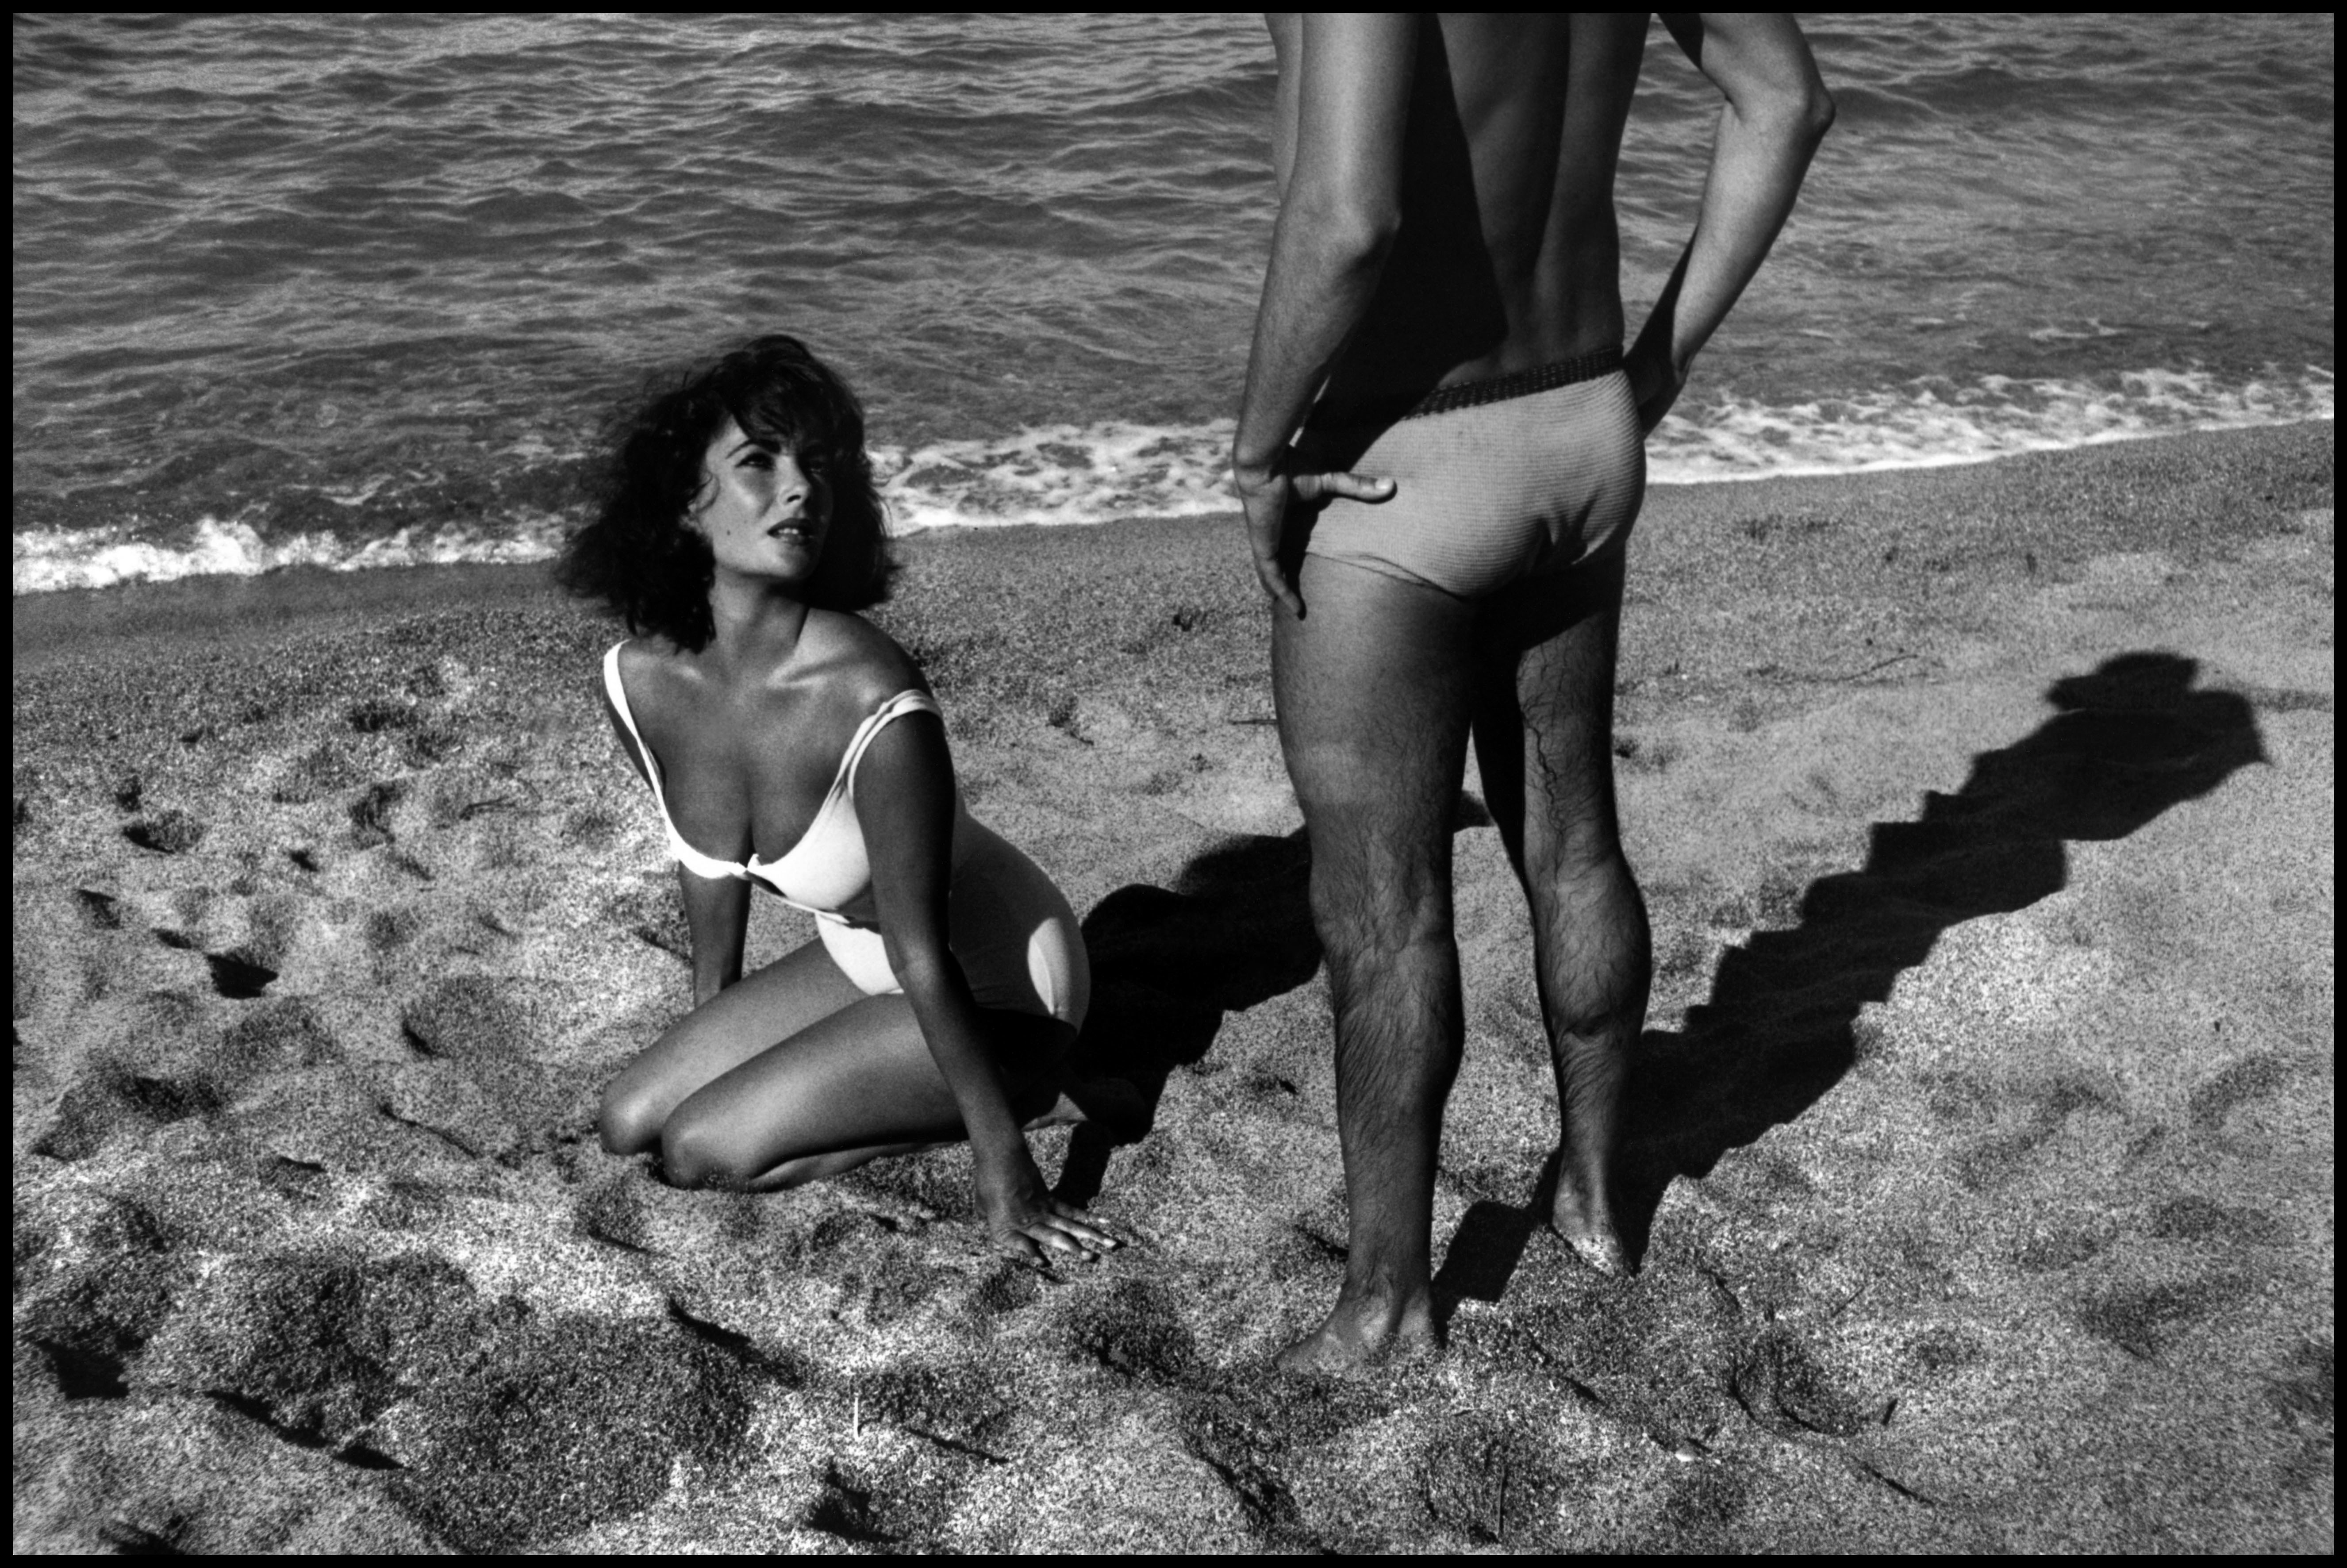 """SPAIN. Sagaro. 1959. Twenty-five-year-old Elizabeth TAYLOR on the set of """"Suddenly Last Summer"""", in which she co-stars with Katharine Hepburn and Montgomery Clift.  It is Taylor's first film after the death of her 3rd husband, Mike Todd, in a plane crash. Just months after Todd's death, Taylor married Eddie Fisher and found herself at the center of a scandal. It was a place that would become familar for her, though never comfortable, for the next 30 years."""